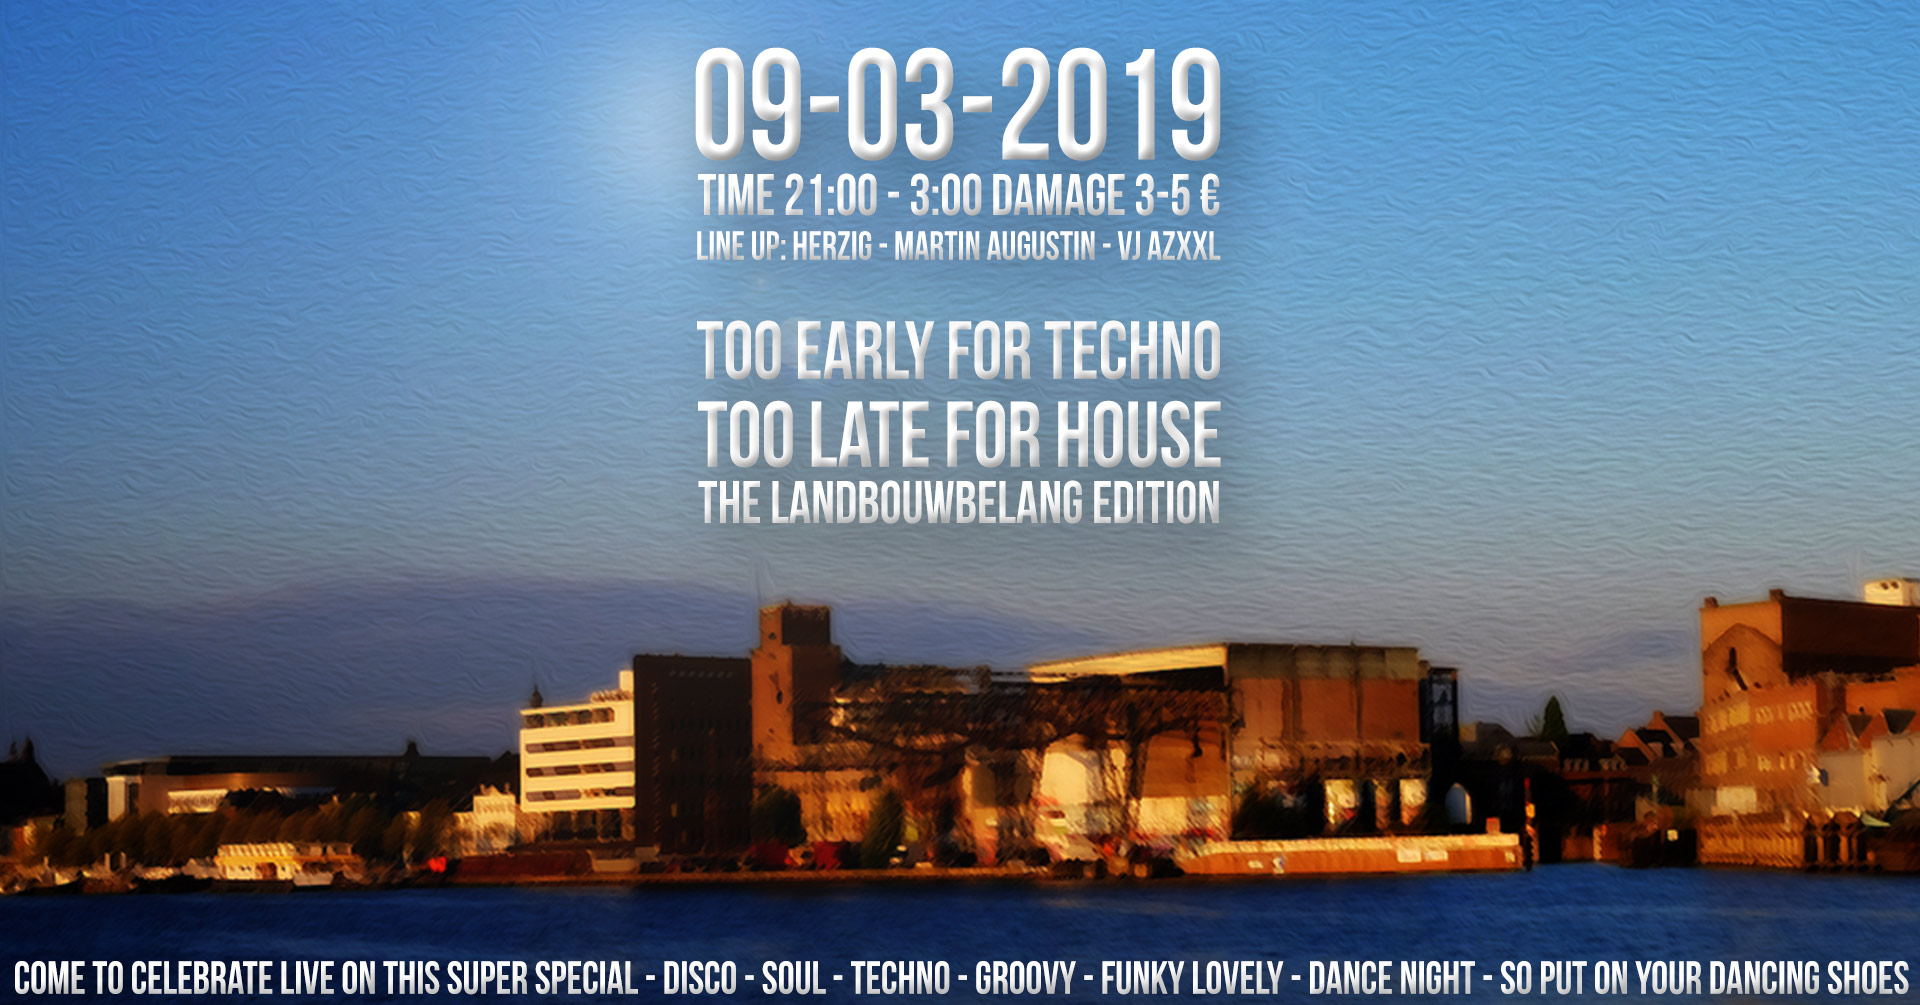 26 02 2019 Too early for techno too late for house FB header1 LBB